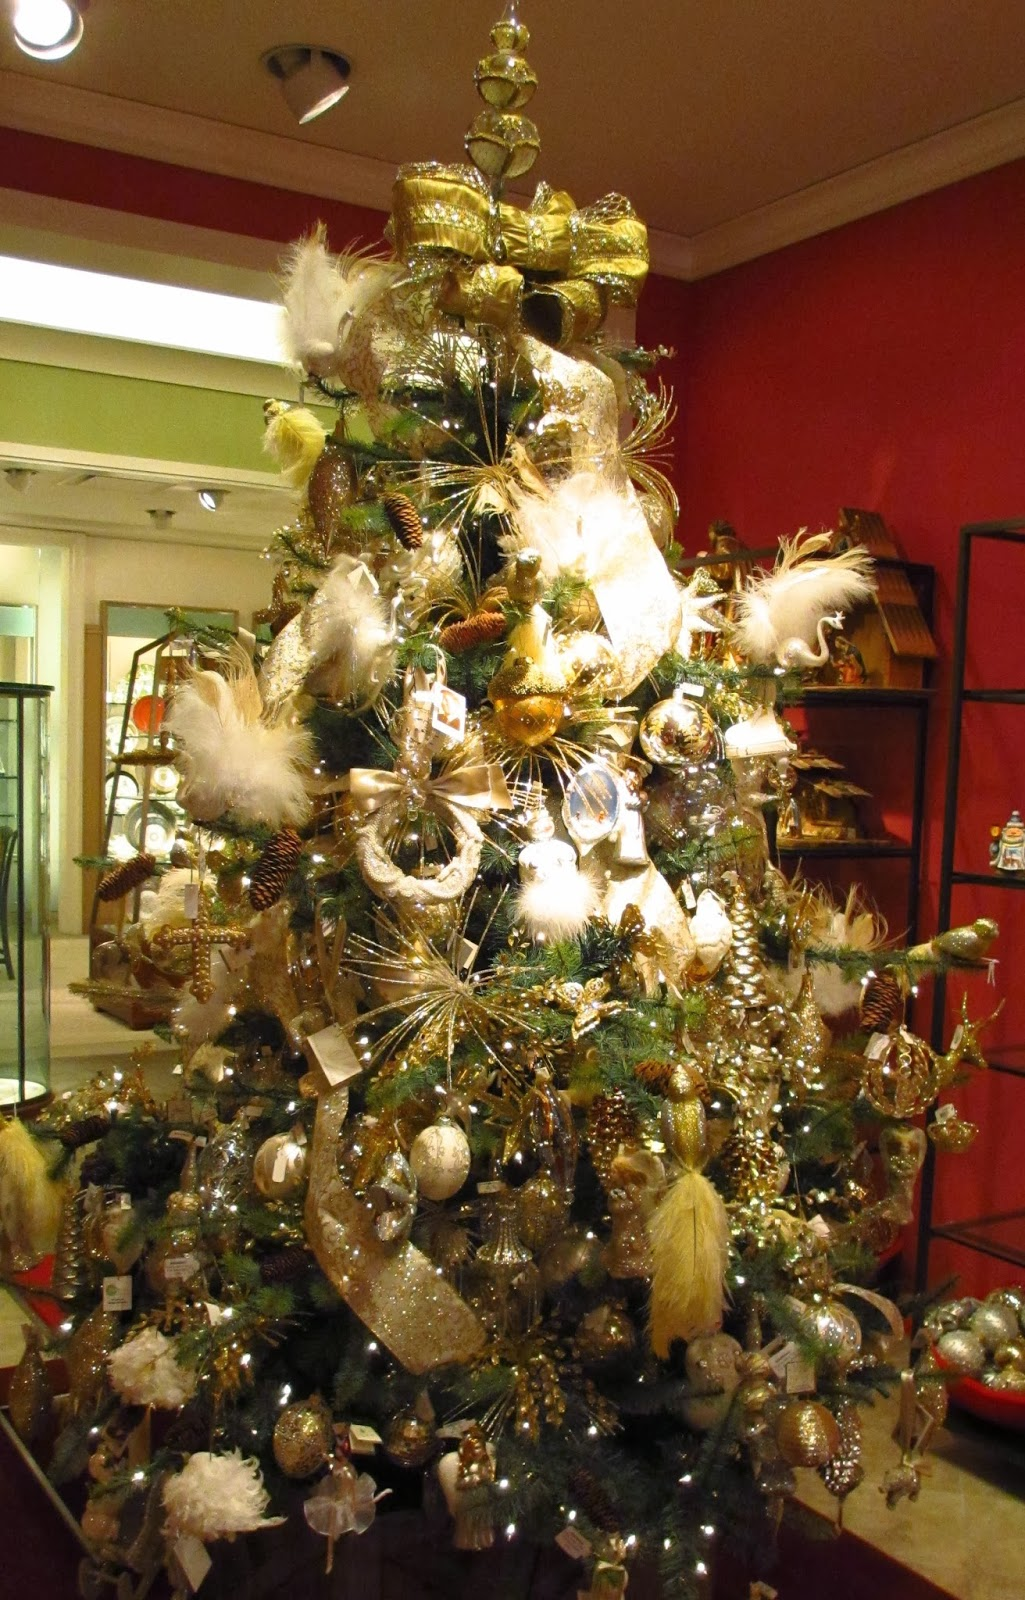 a modern take on classic christmas tree found on mneimanmarcuscom trees trees tree decor - Neiman Marcus Christmas Decor